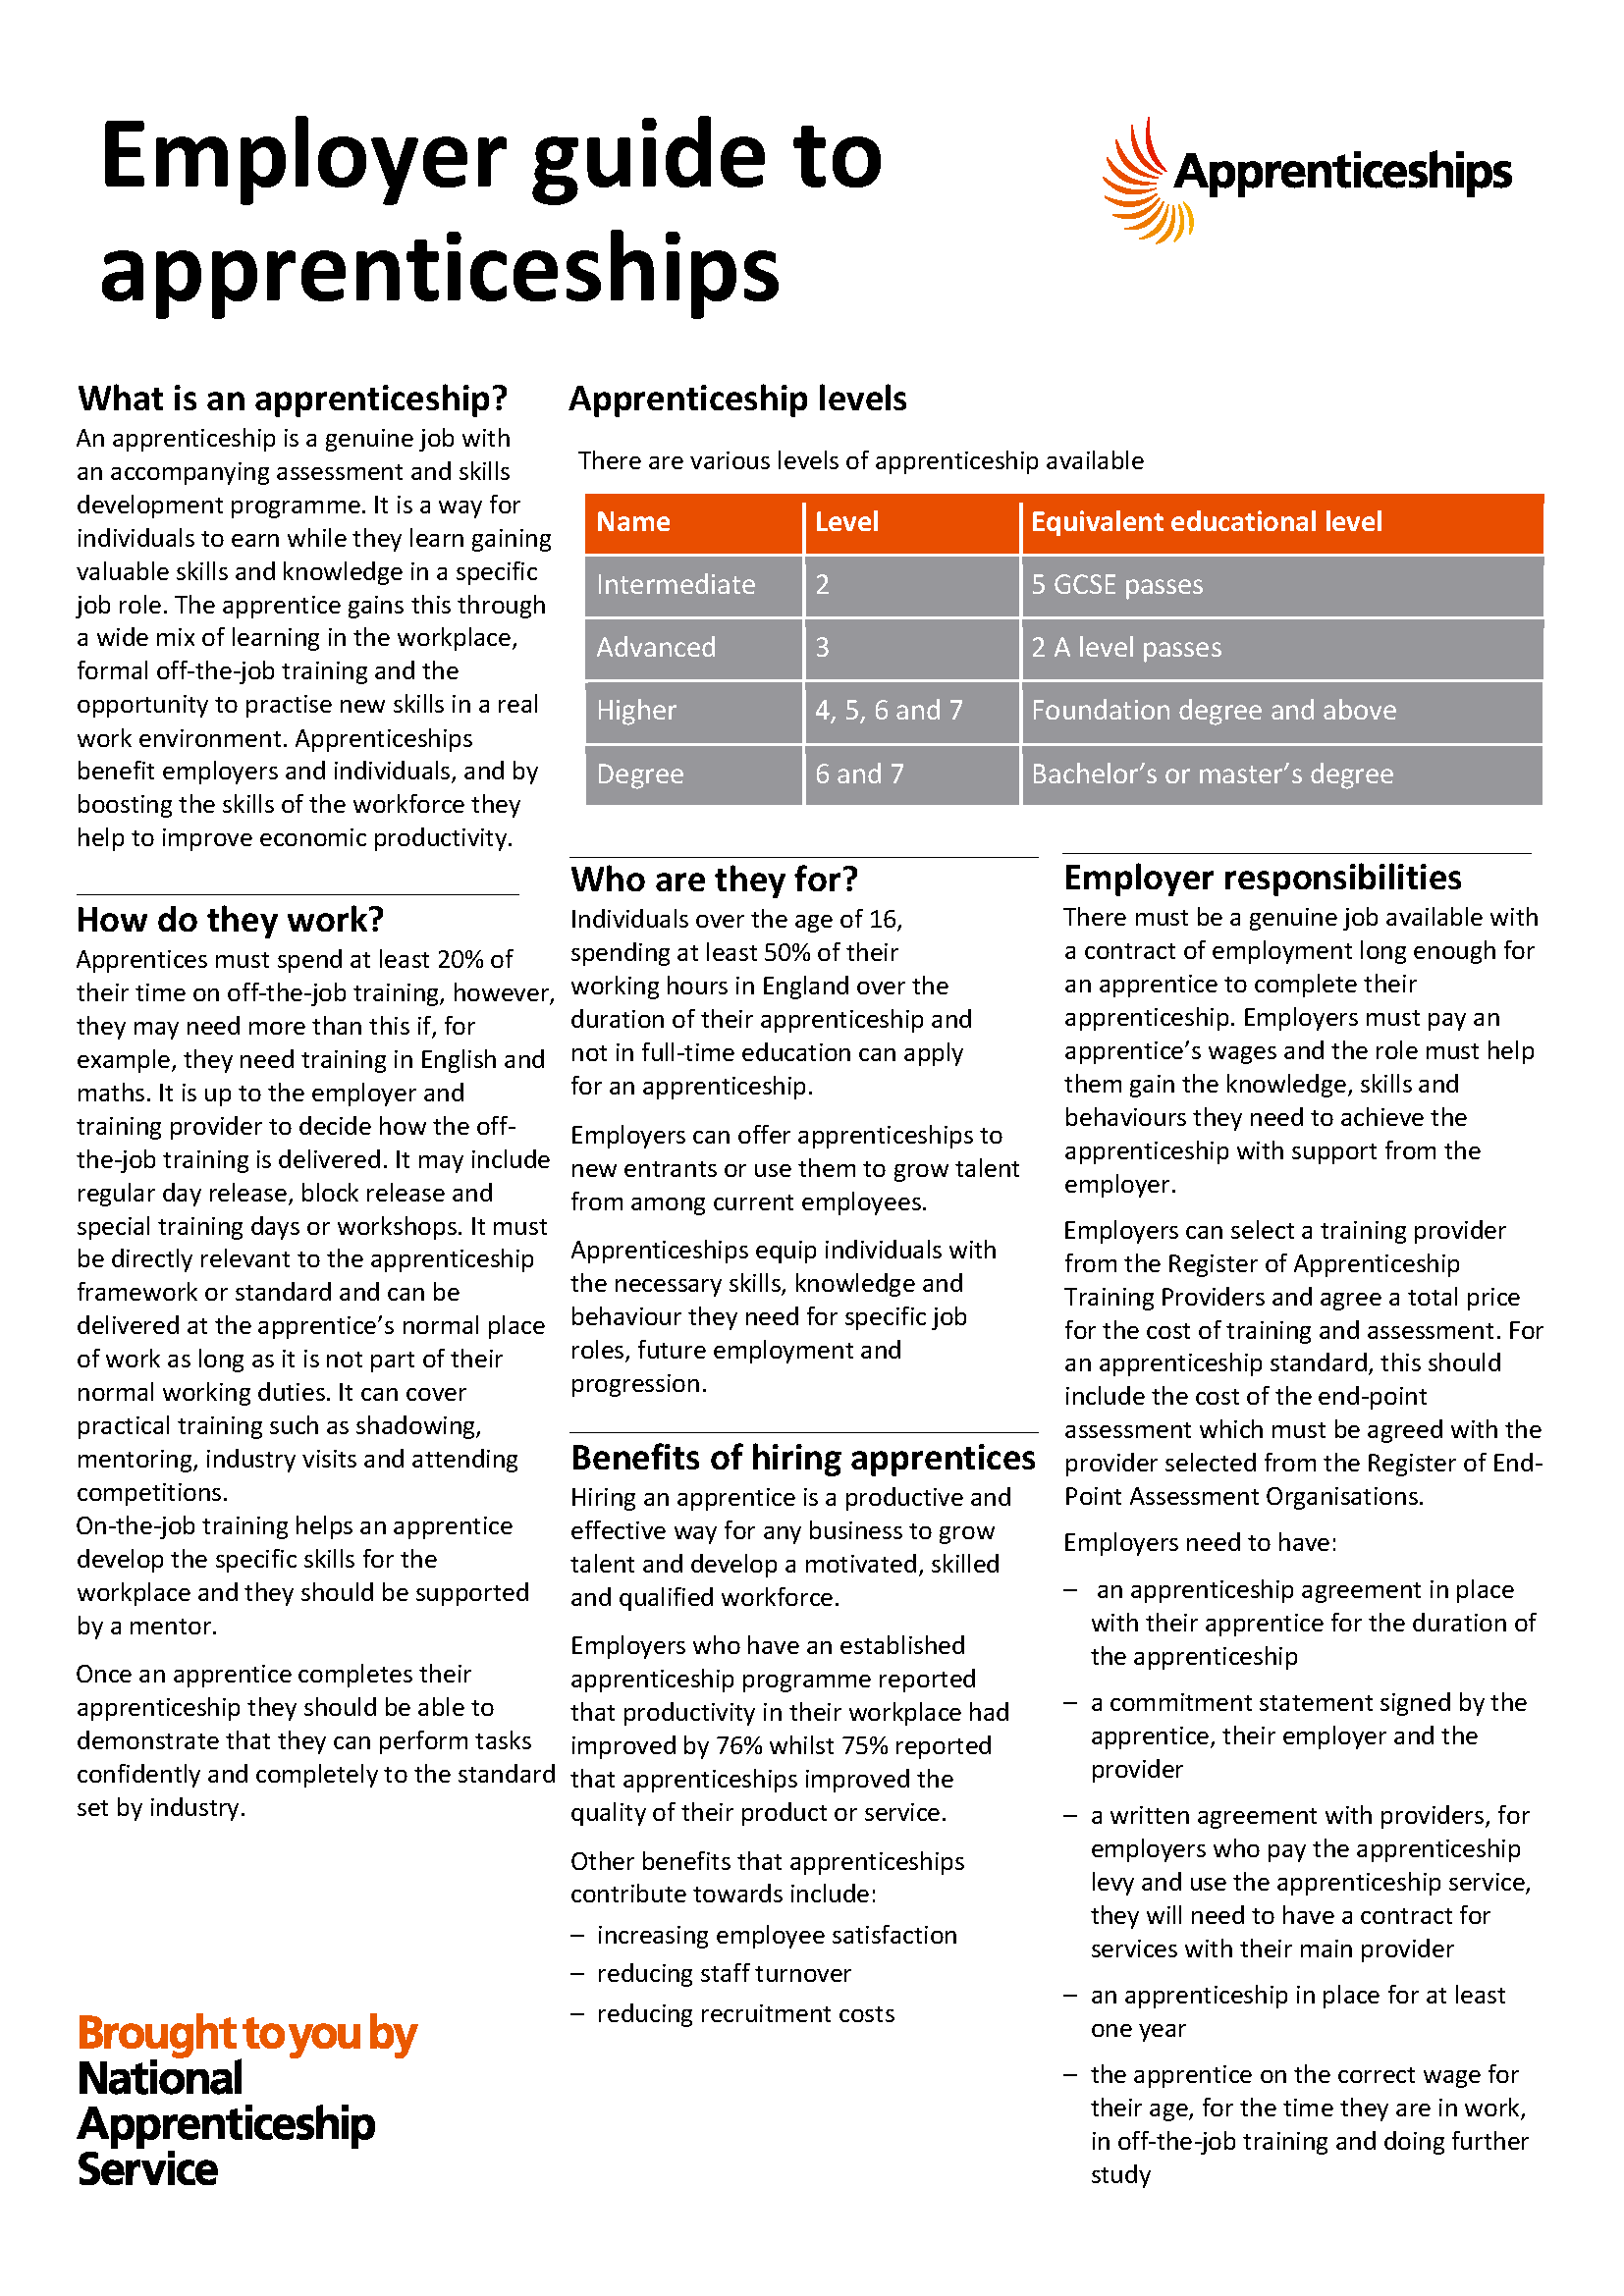 NAS Employer Guide to Apprenticeships